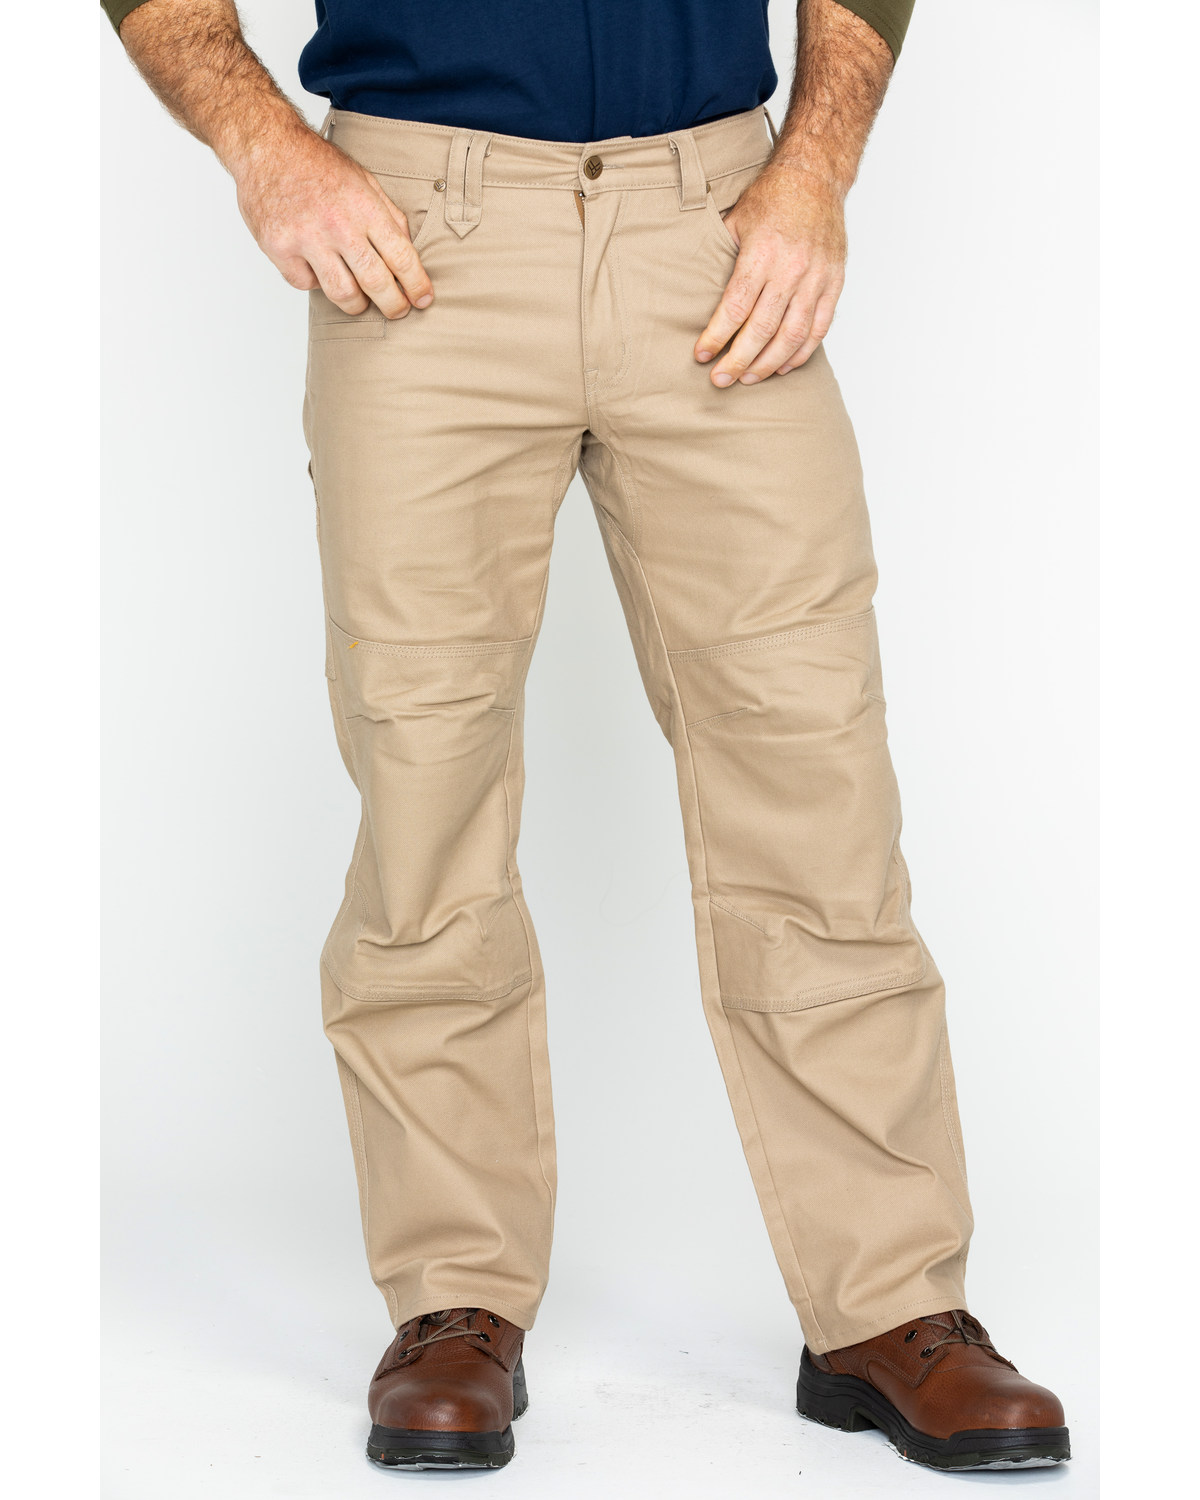 f68e9ef7cde Hawx® Men s Stretch Canvas Utility Work Pants